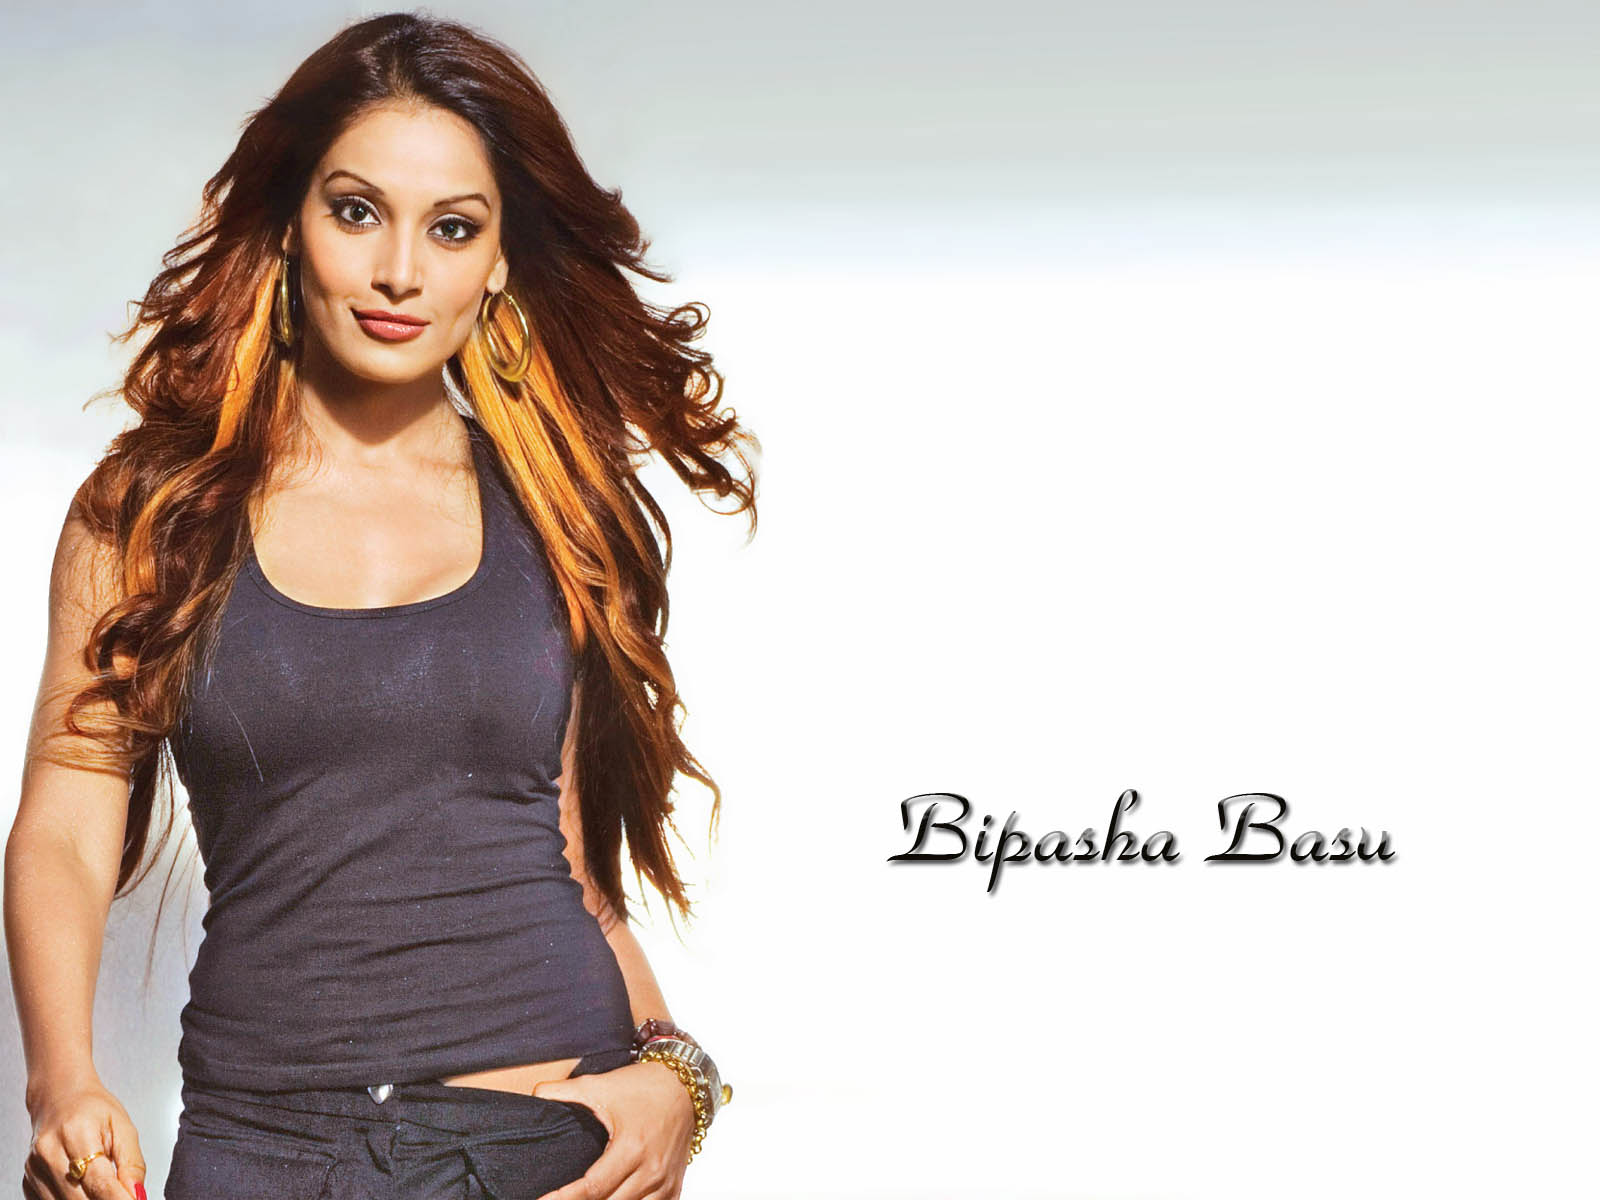 bipasha basu images & hot photos - celebrityupdates